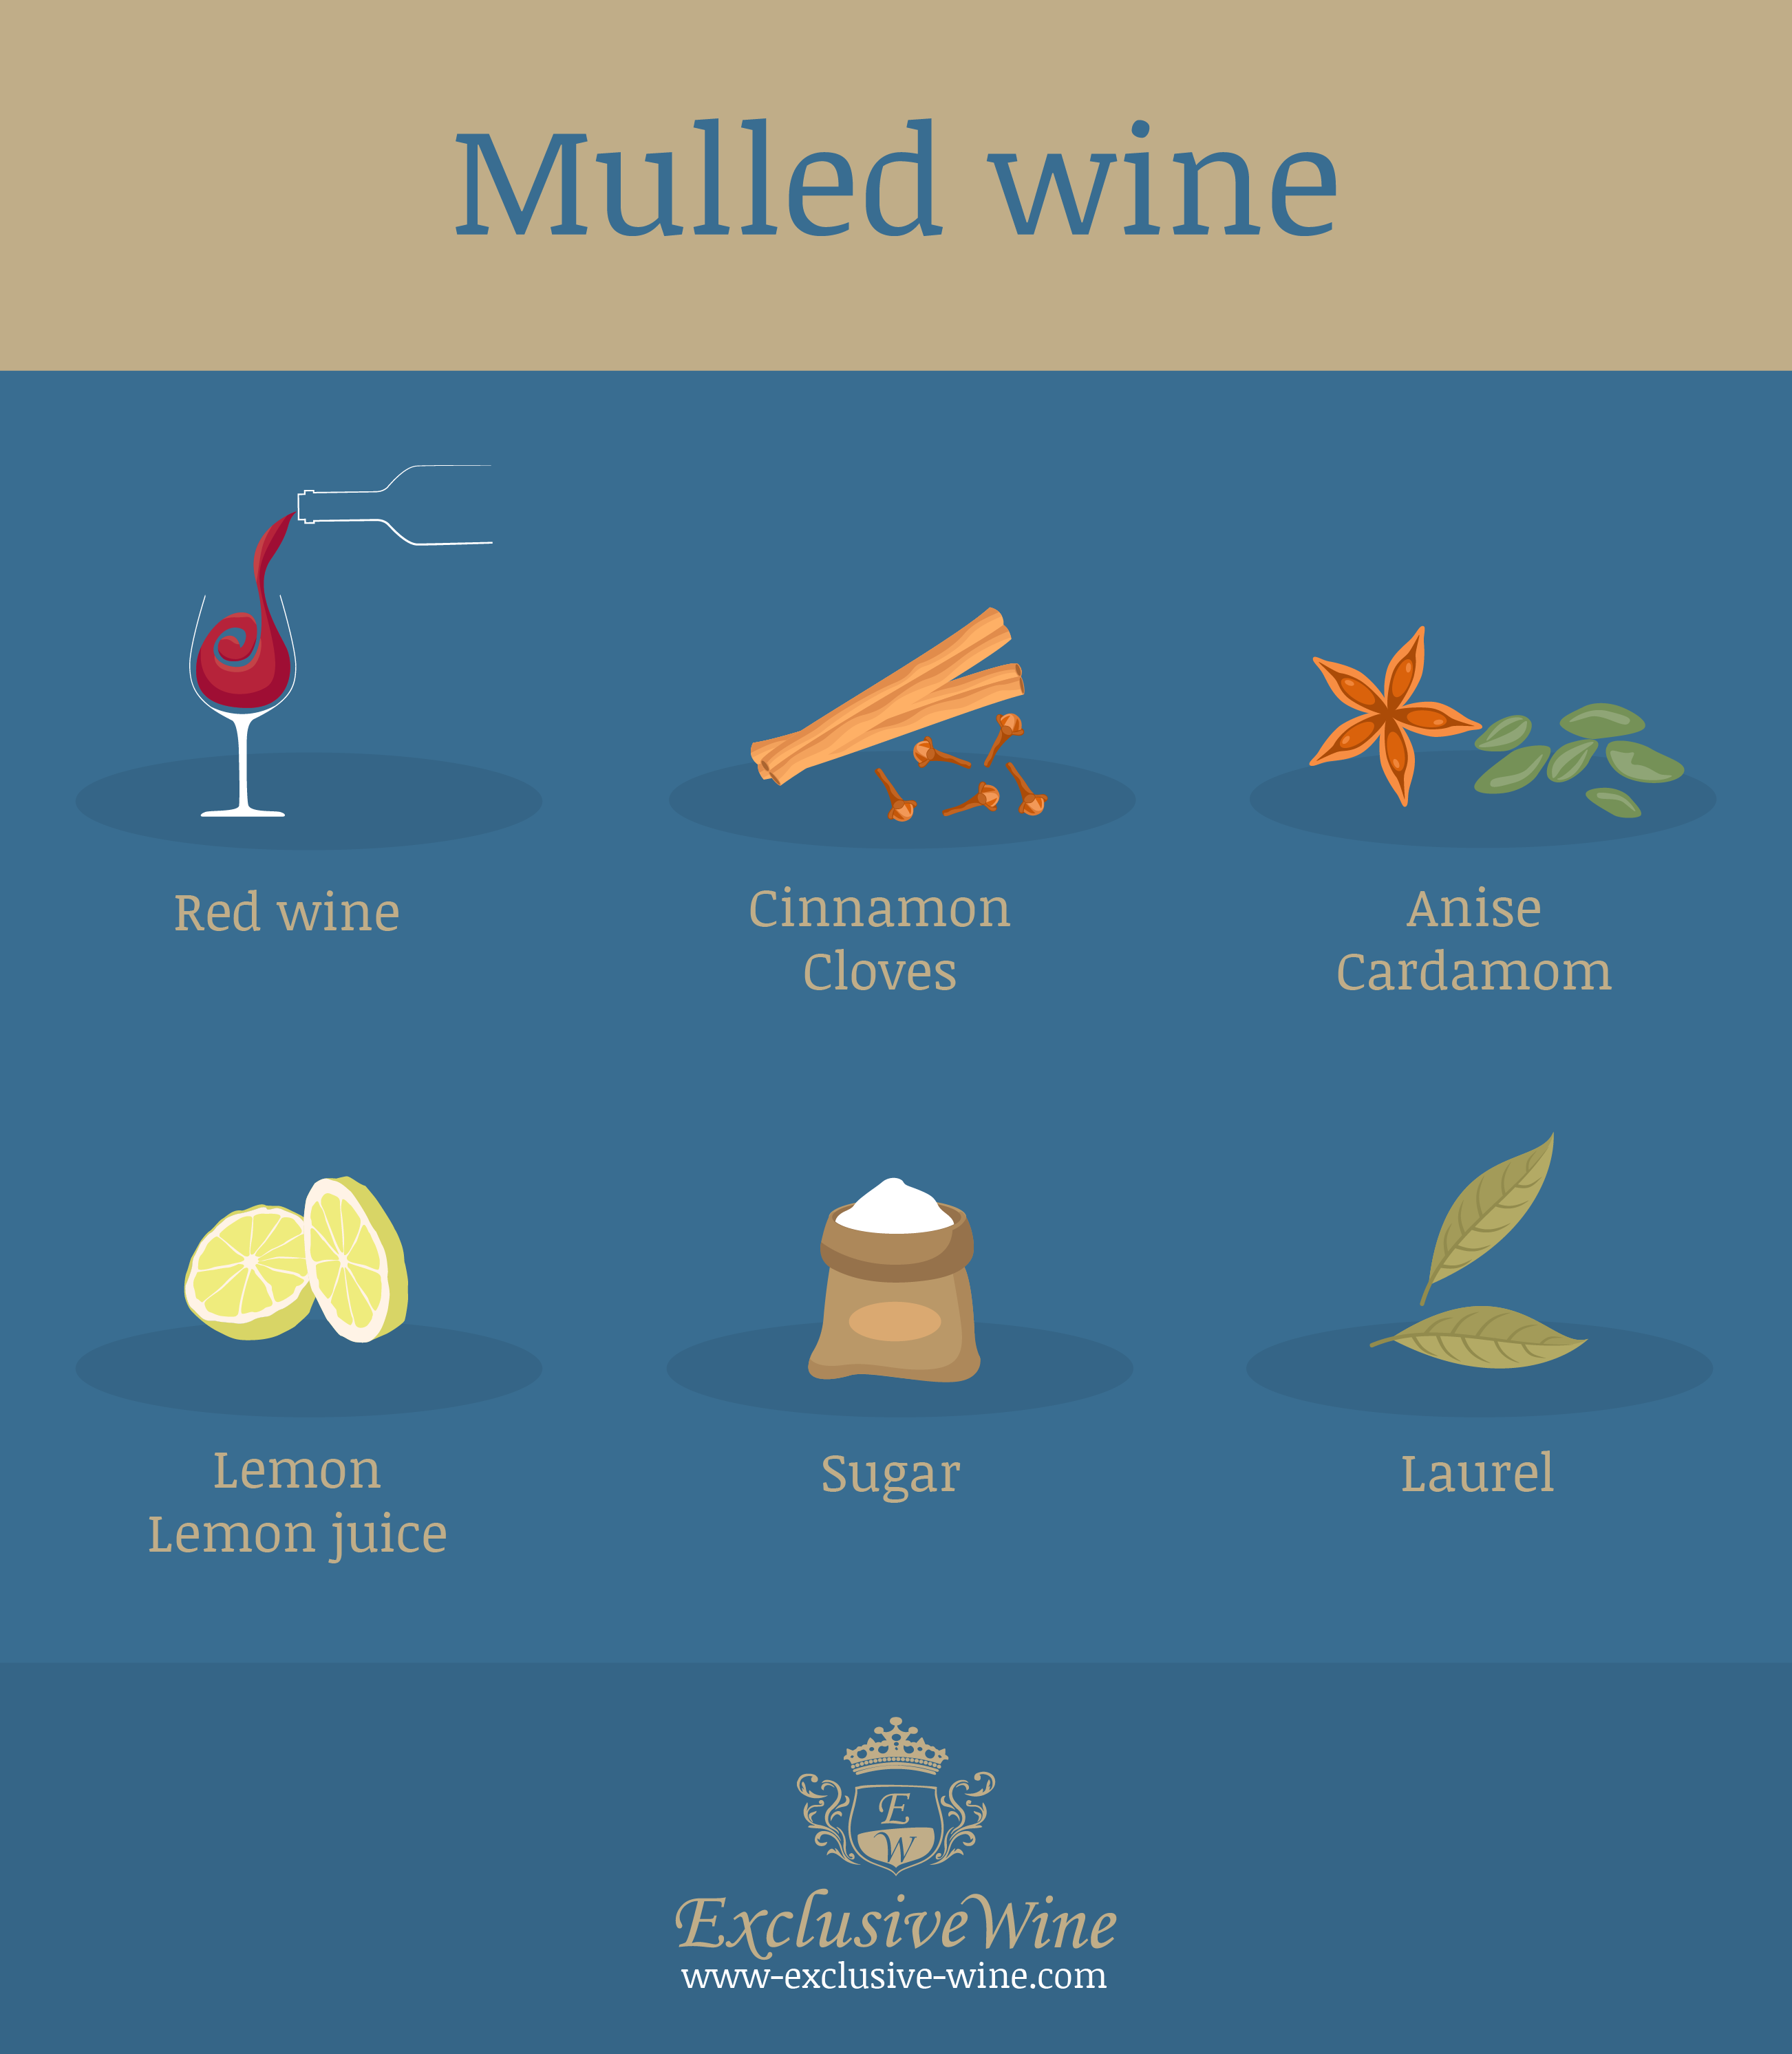 mulled-wine-recipe-ricetta-vino-caldo-exclusive-wine-2